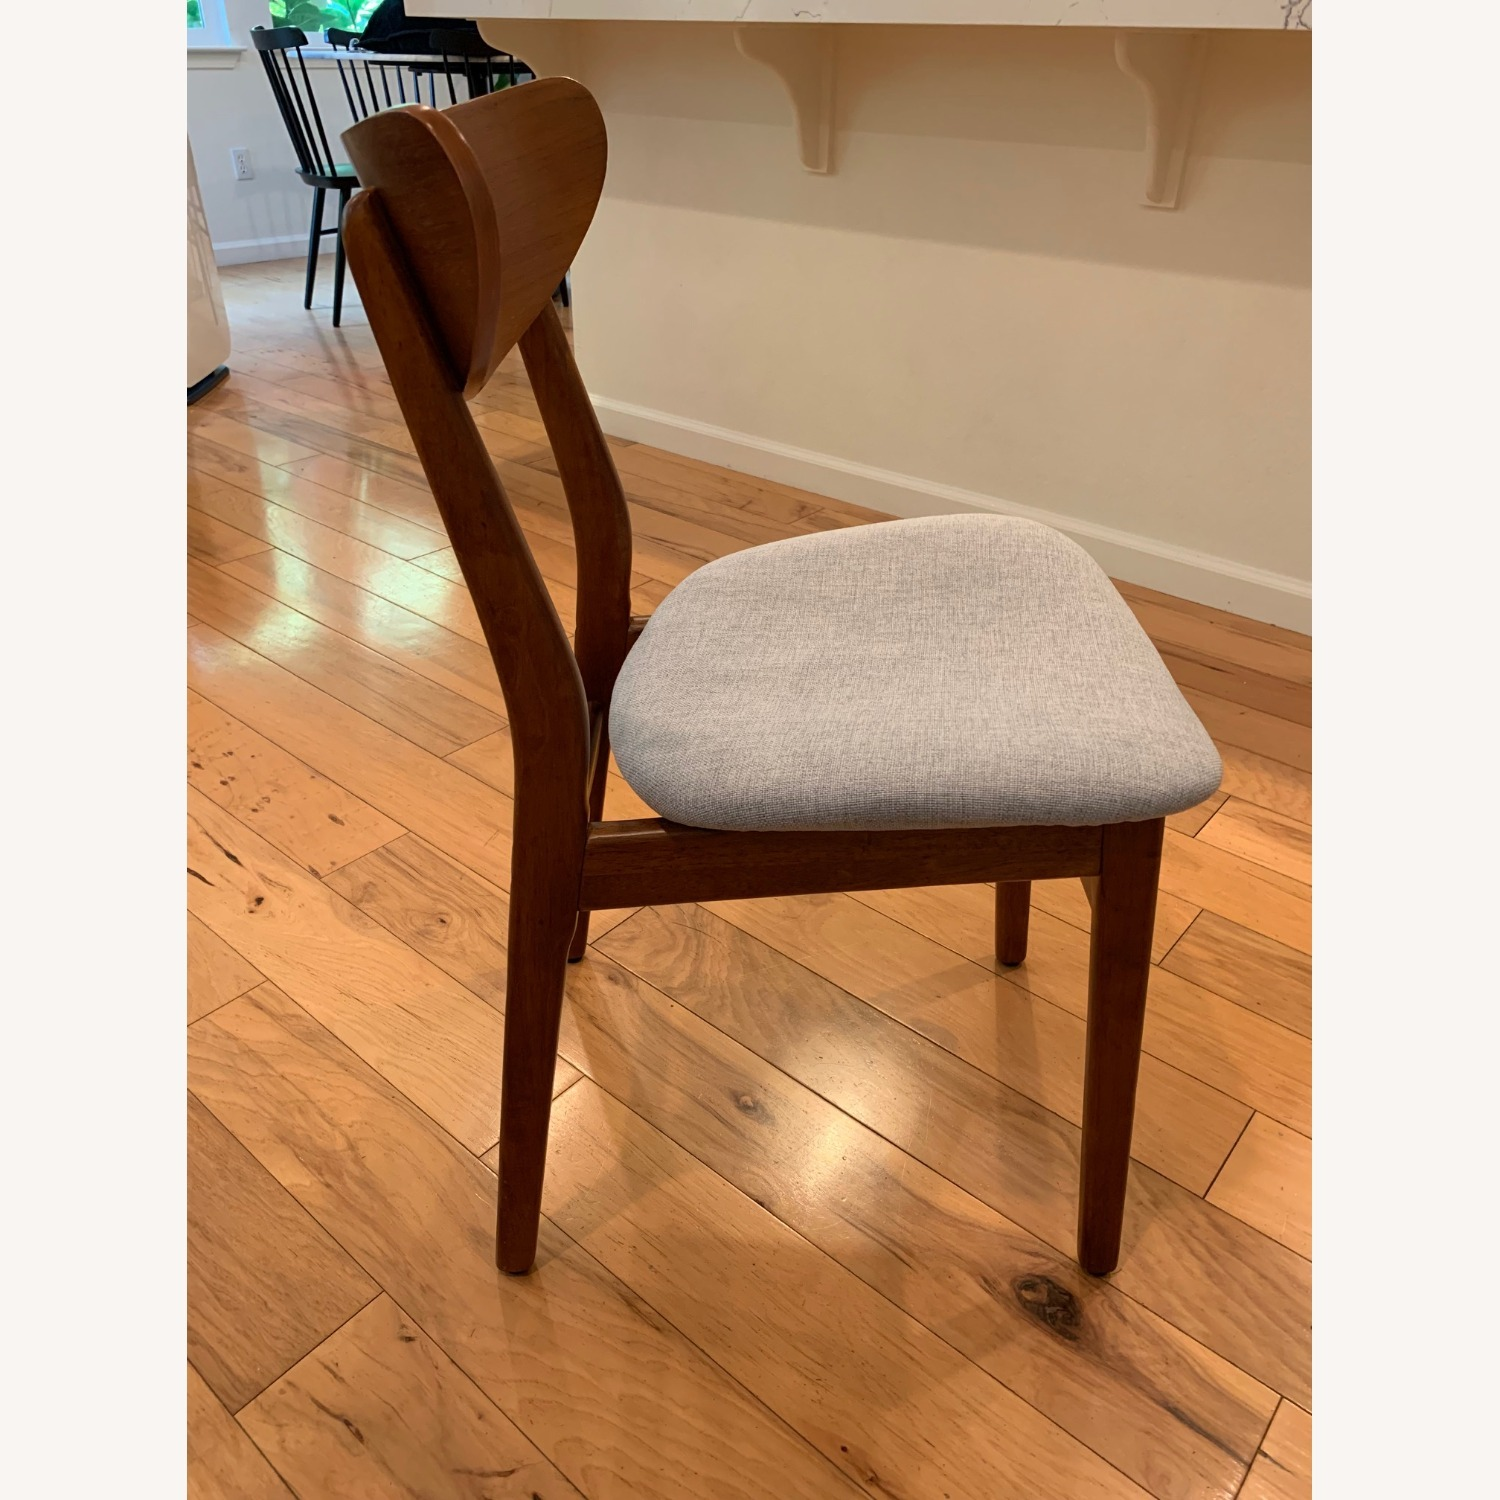 West Elm Classic Cafe Dining Chair(s) - image-4